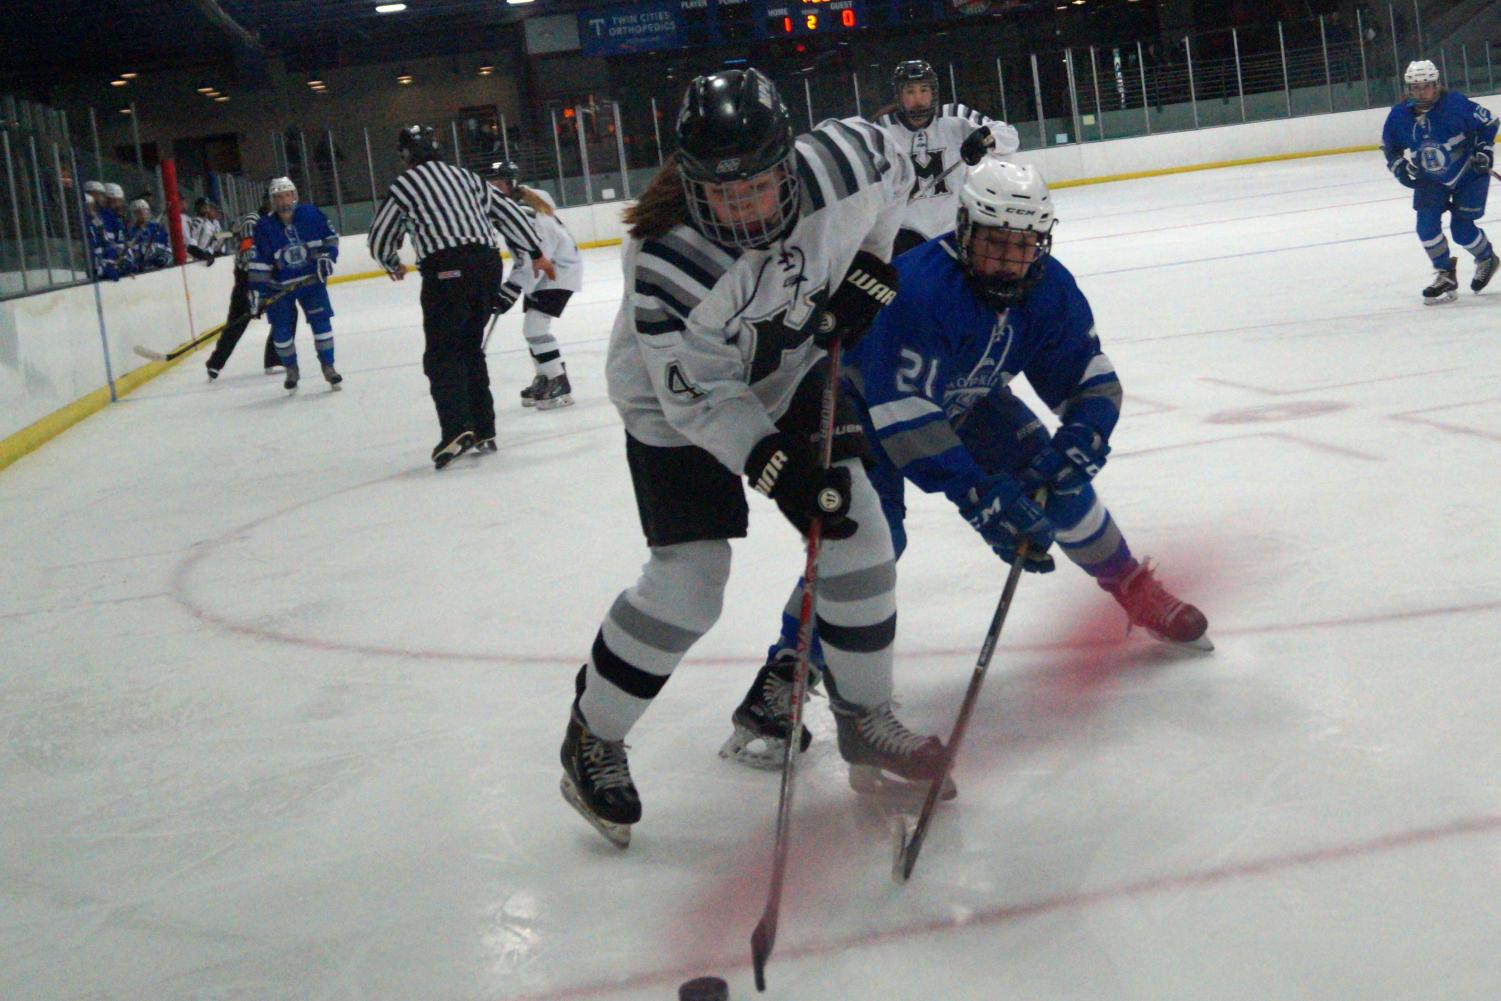 Sophomore Sarah Mccallon fights for the puck against Edina defender. Girls hockey plays Wayzata at 3 p.m. Feb 6 at the Minnetonka A arena.